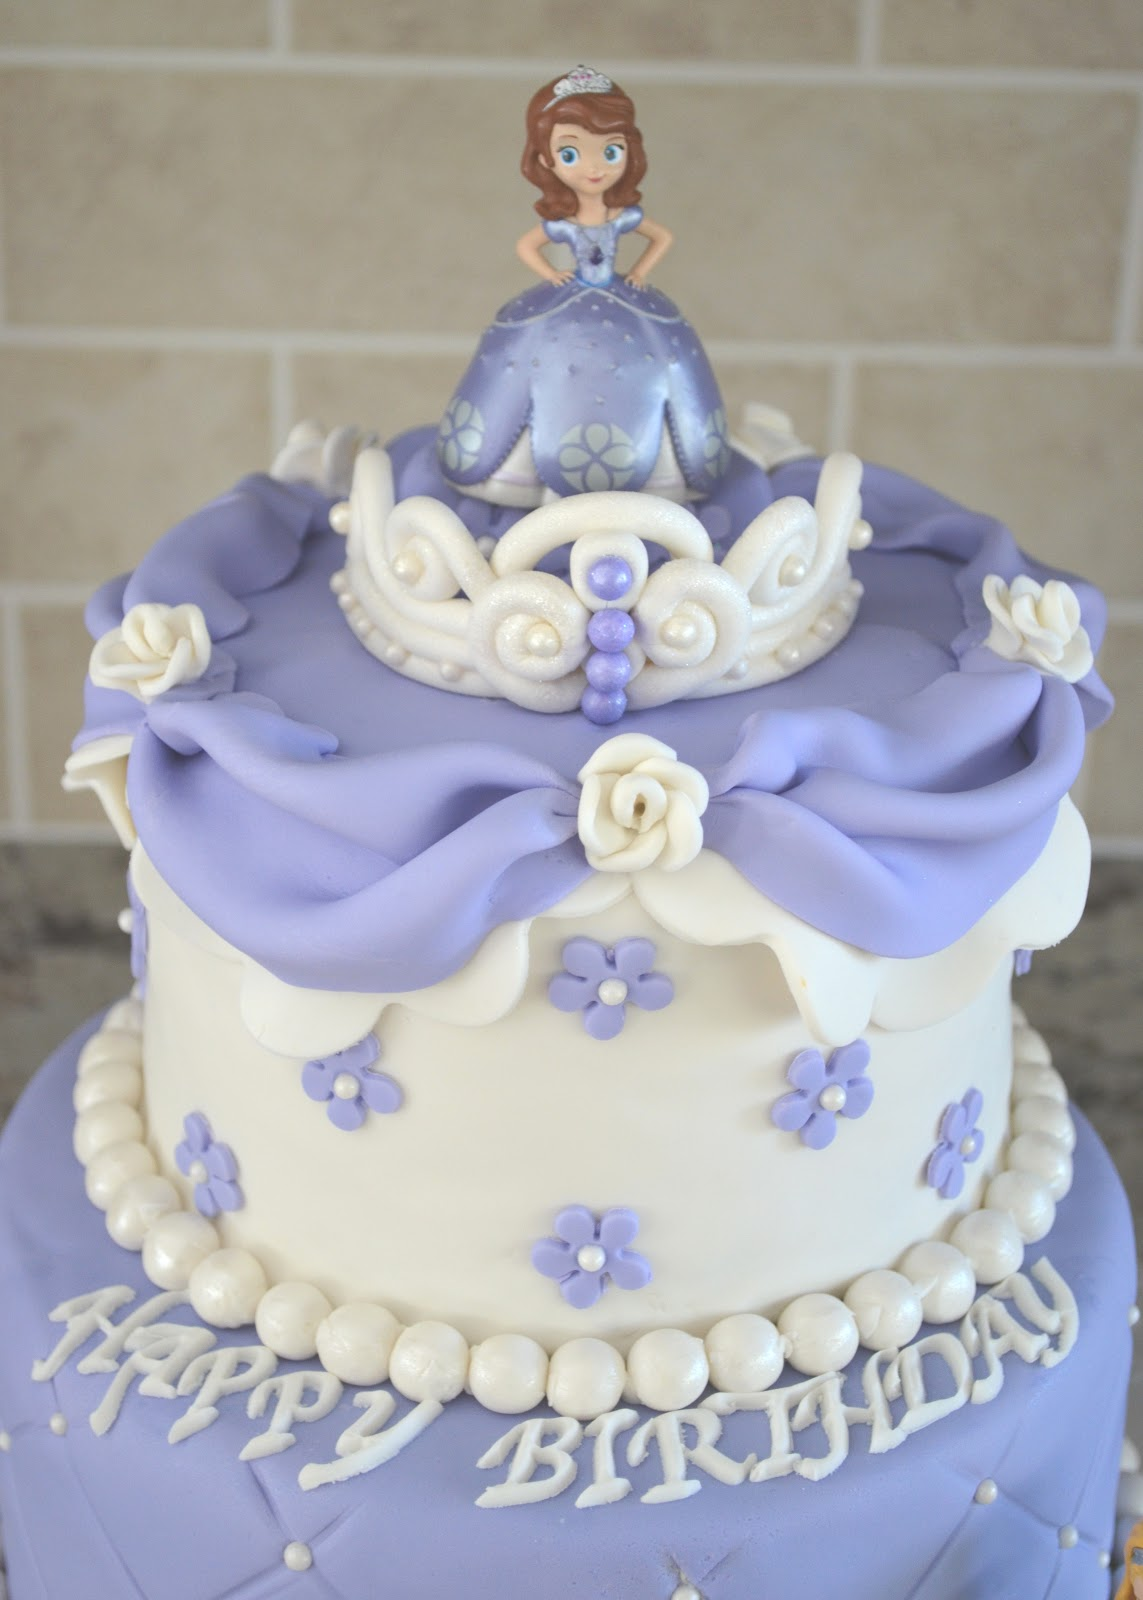 Sofia The First Cake Design Goldilocks : Birthday Ideas on Pinterest